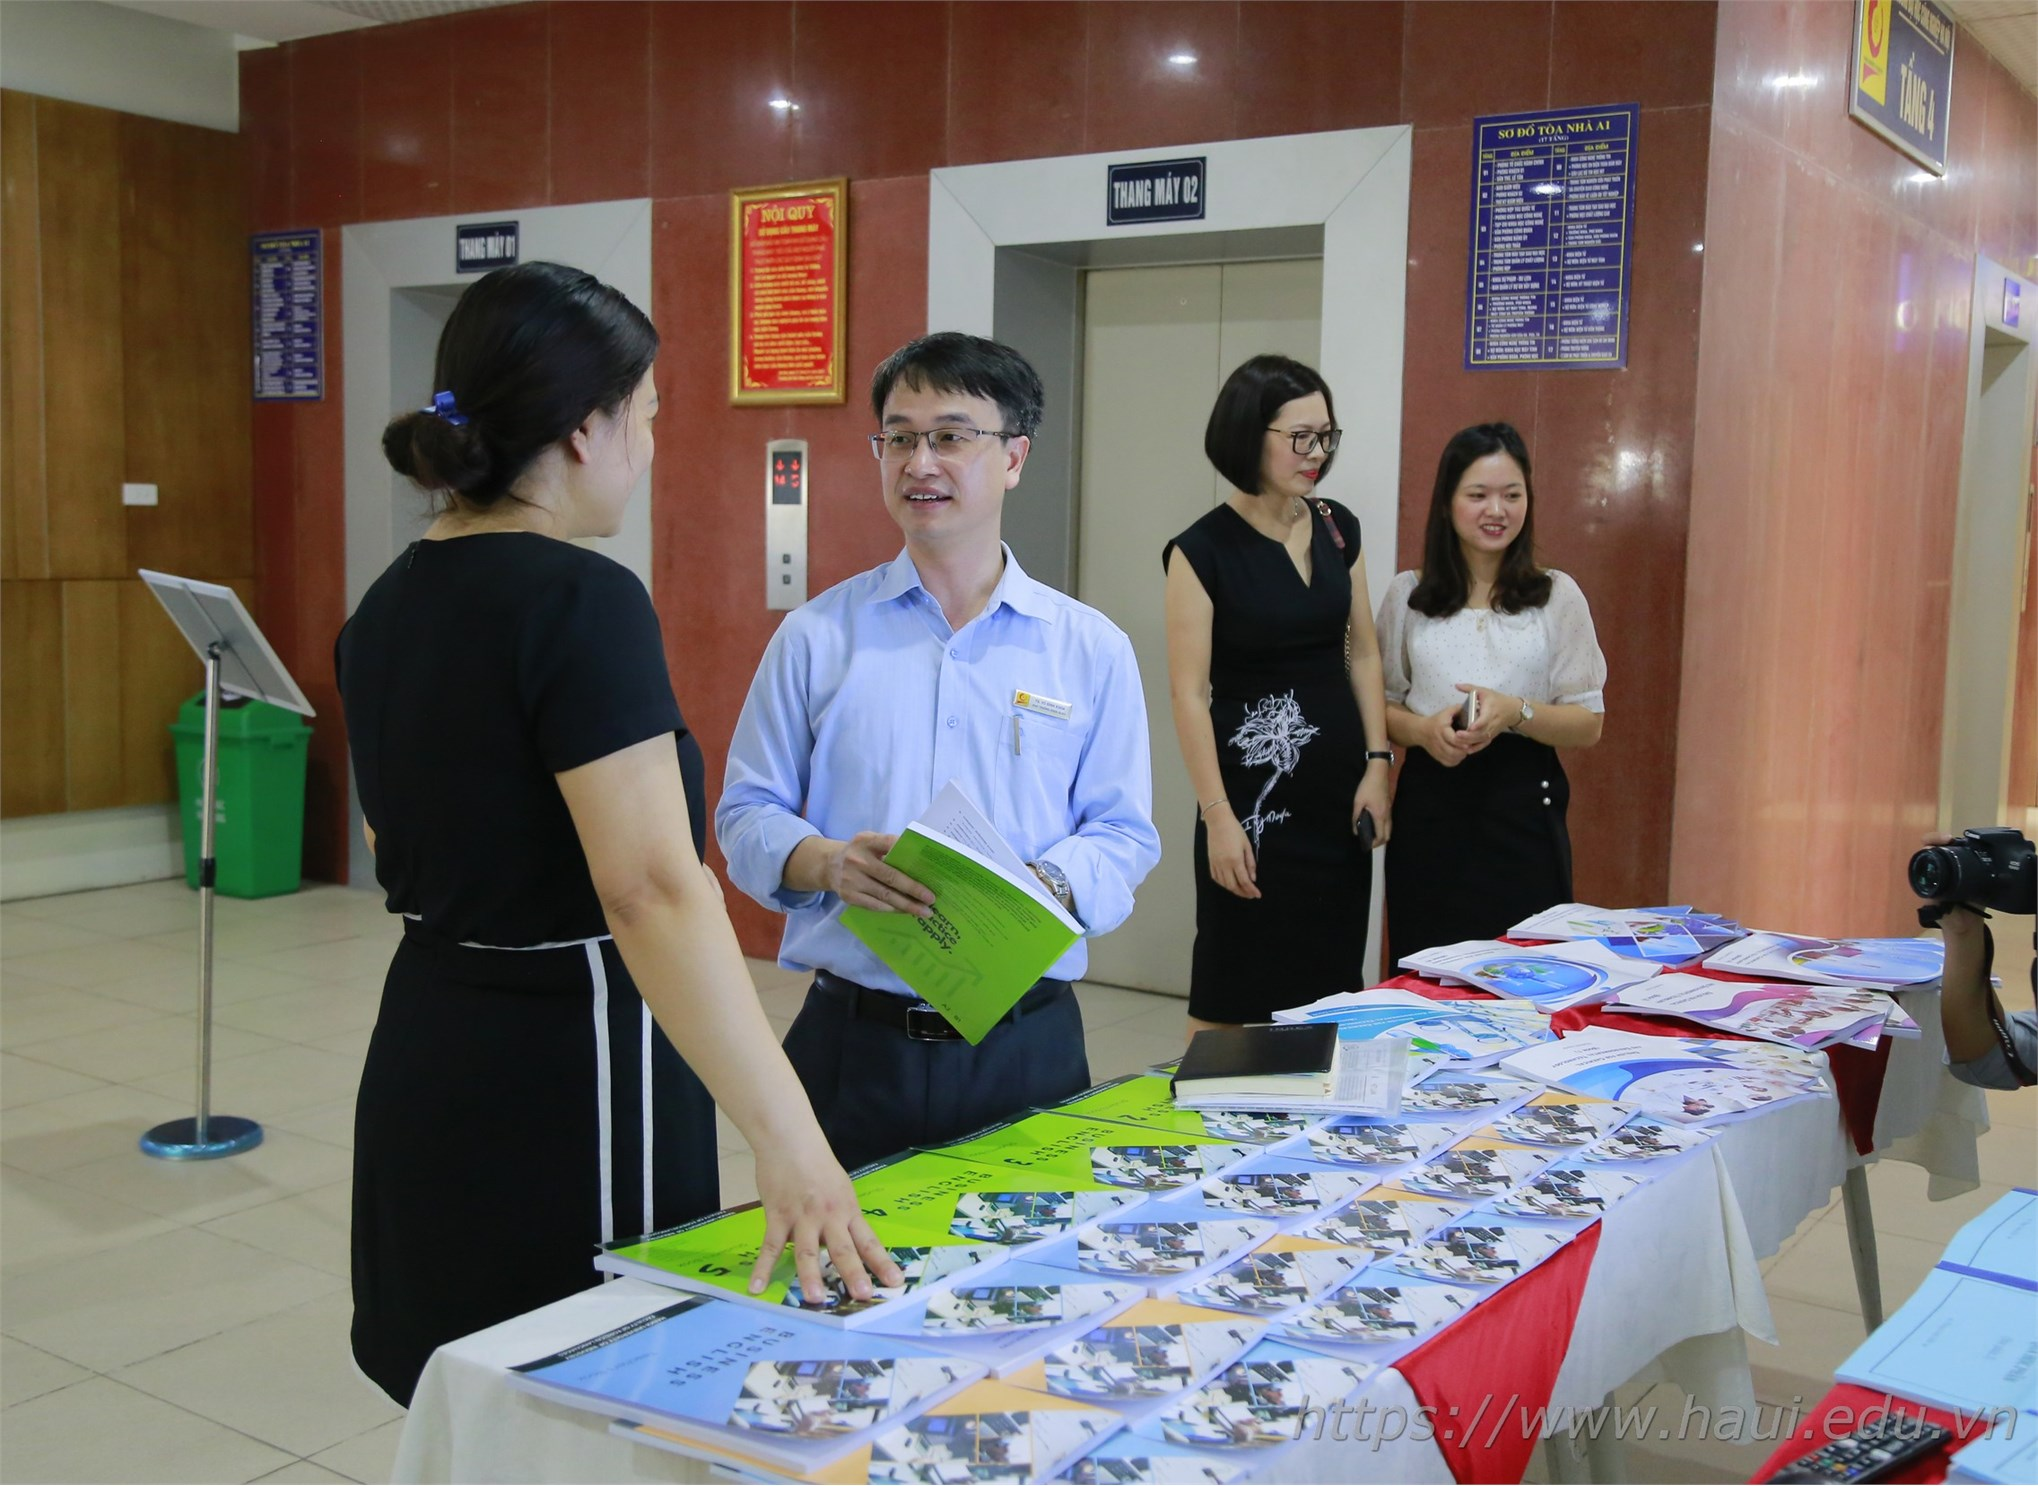 Hanoi University of Industry successfully applied the blended learning method in non-professional English training according to career orientation